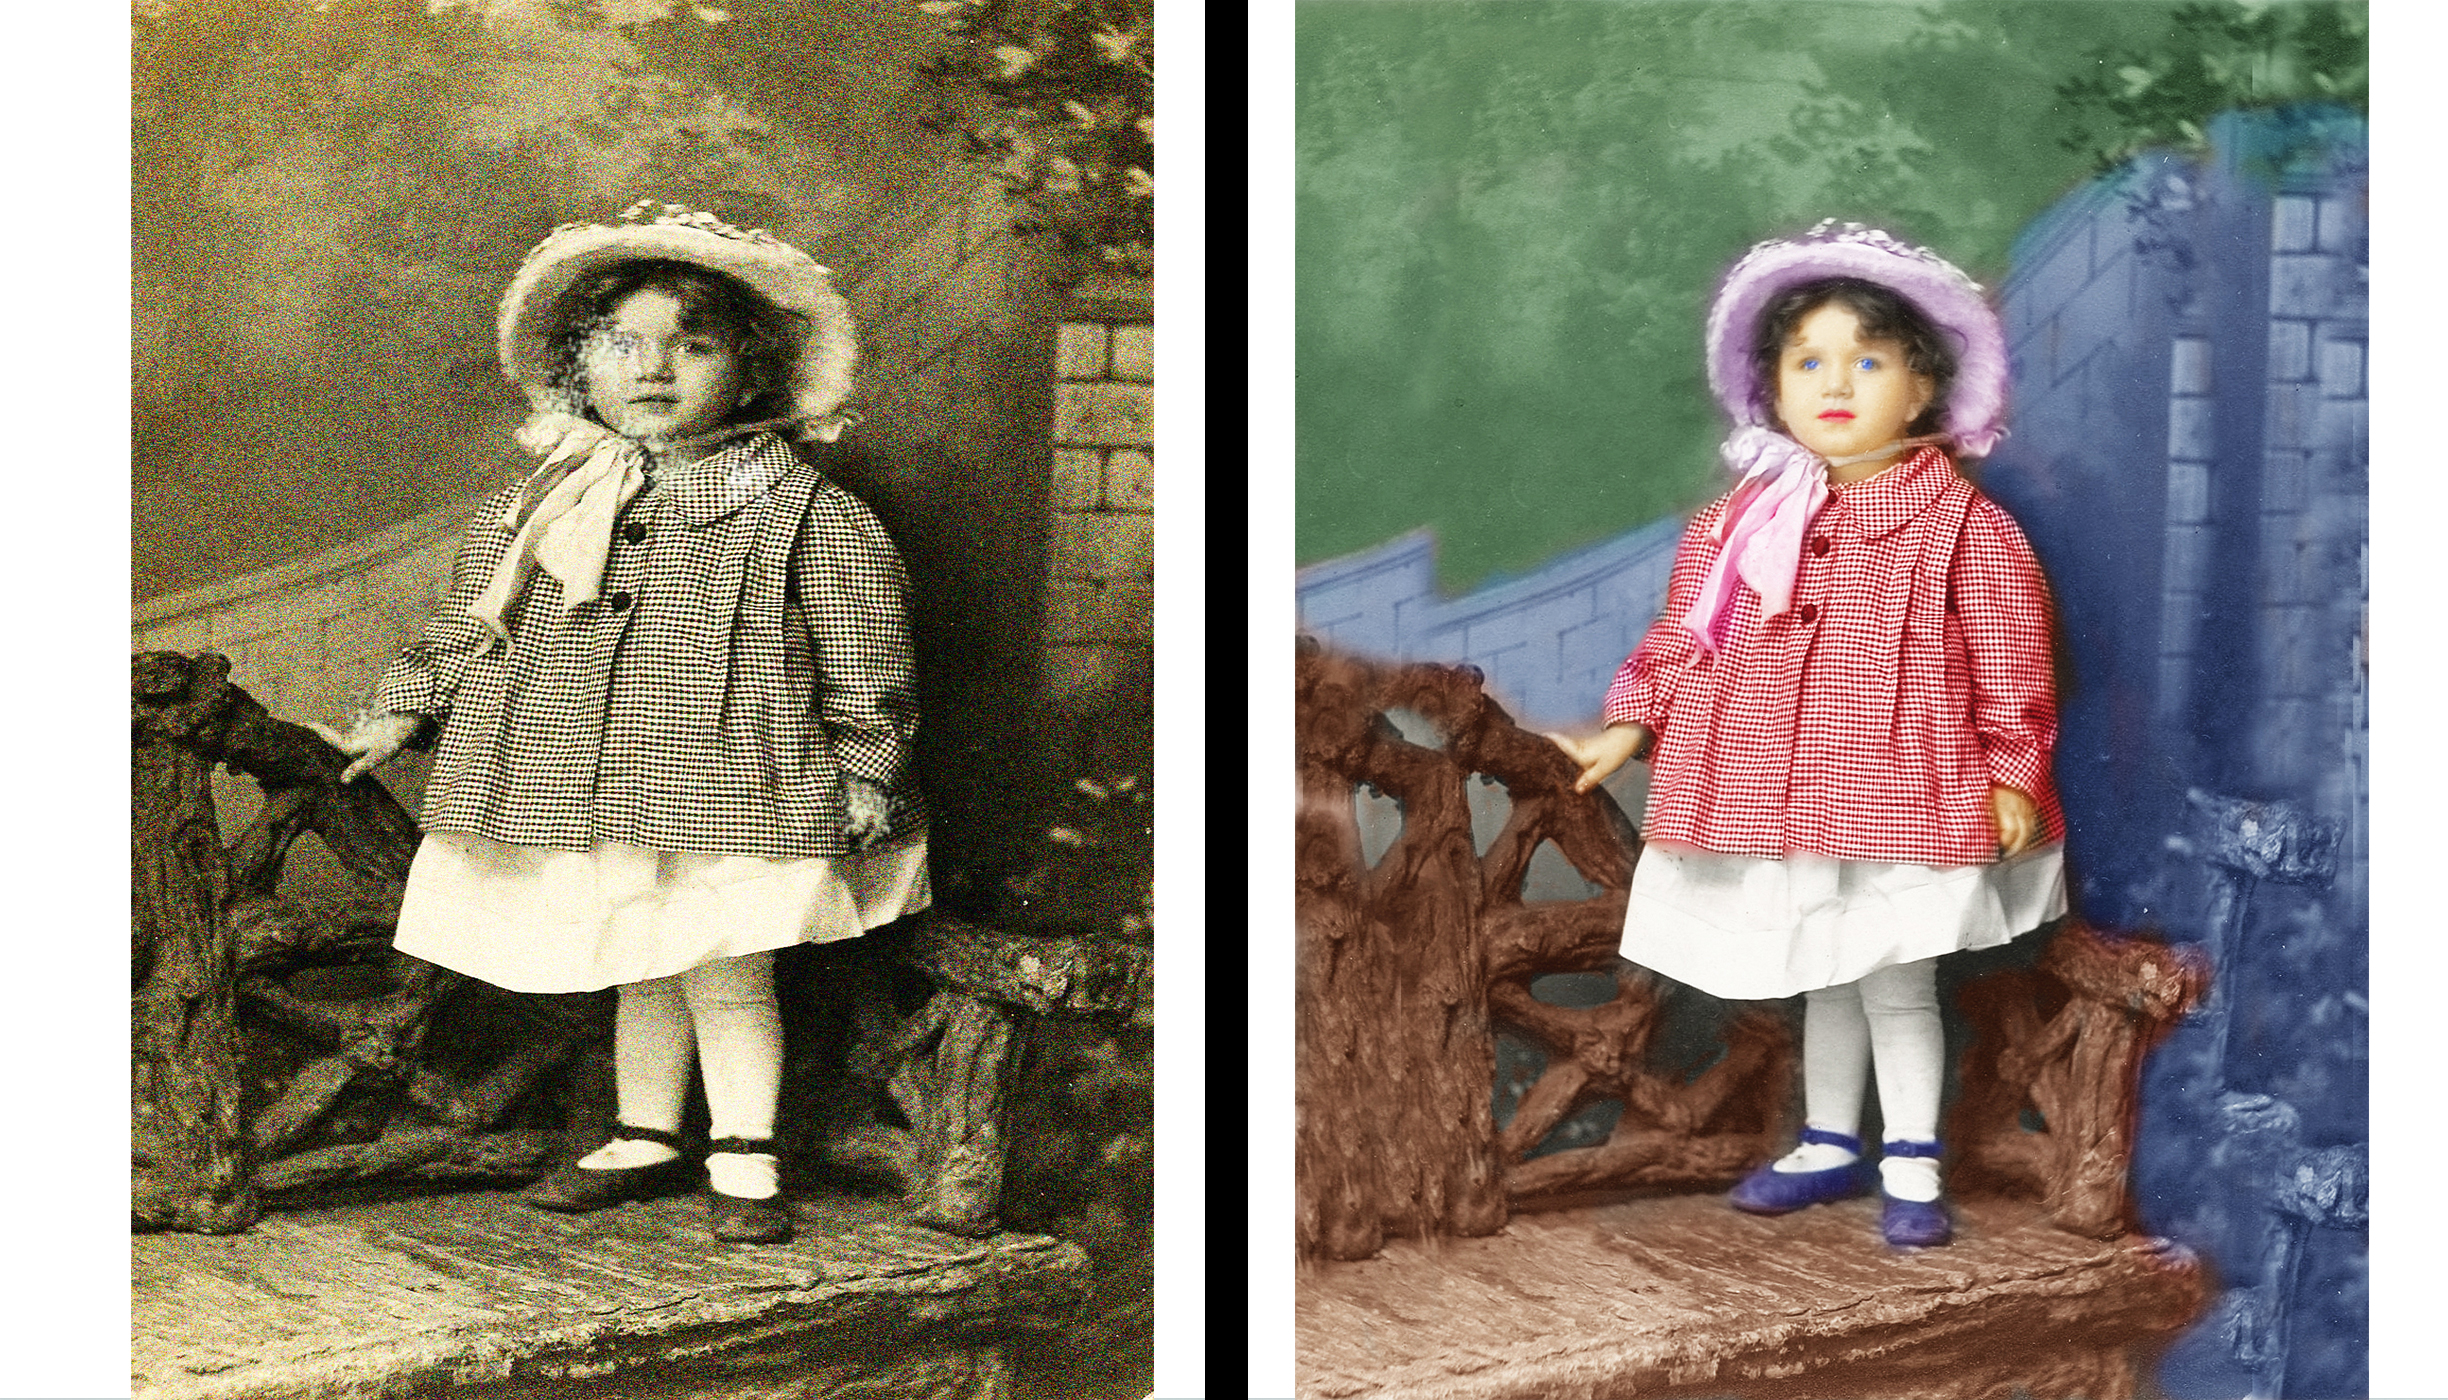 I can restore and retouch your old photo